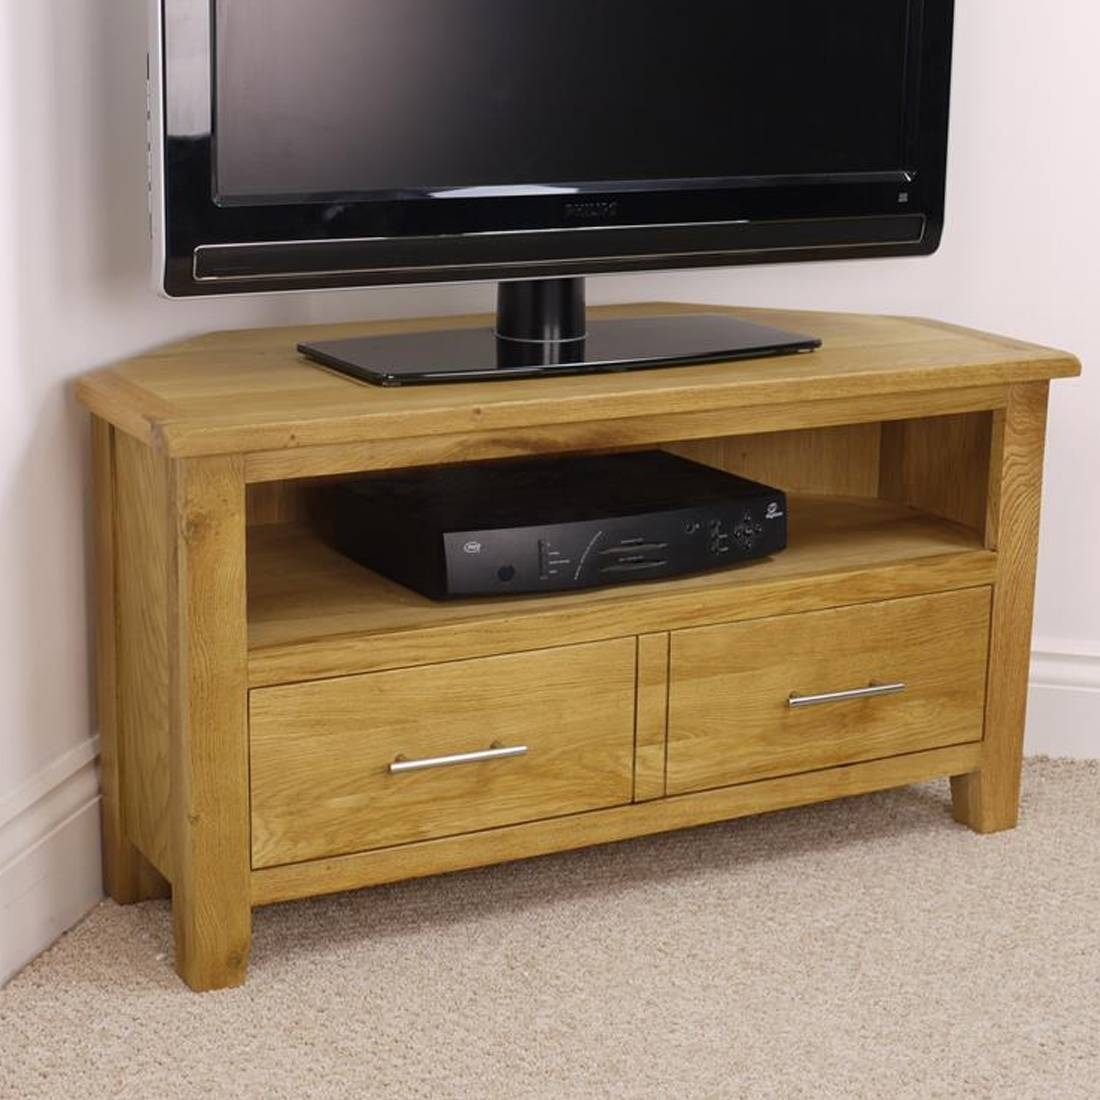 Oak Tv And Entertainment Stands | Ebay Throughout Corner Oak Tv Stands For Flat Screen (View 3 of 15)